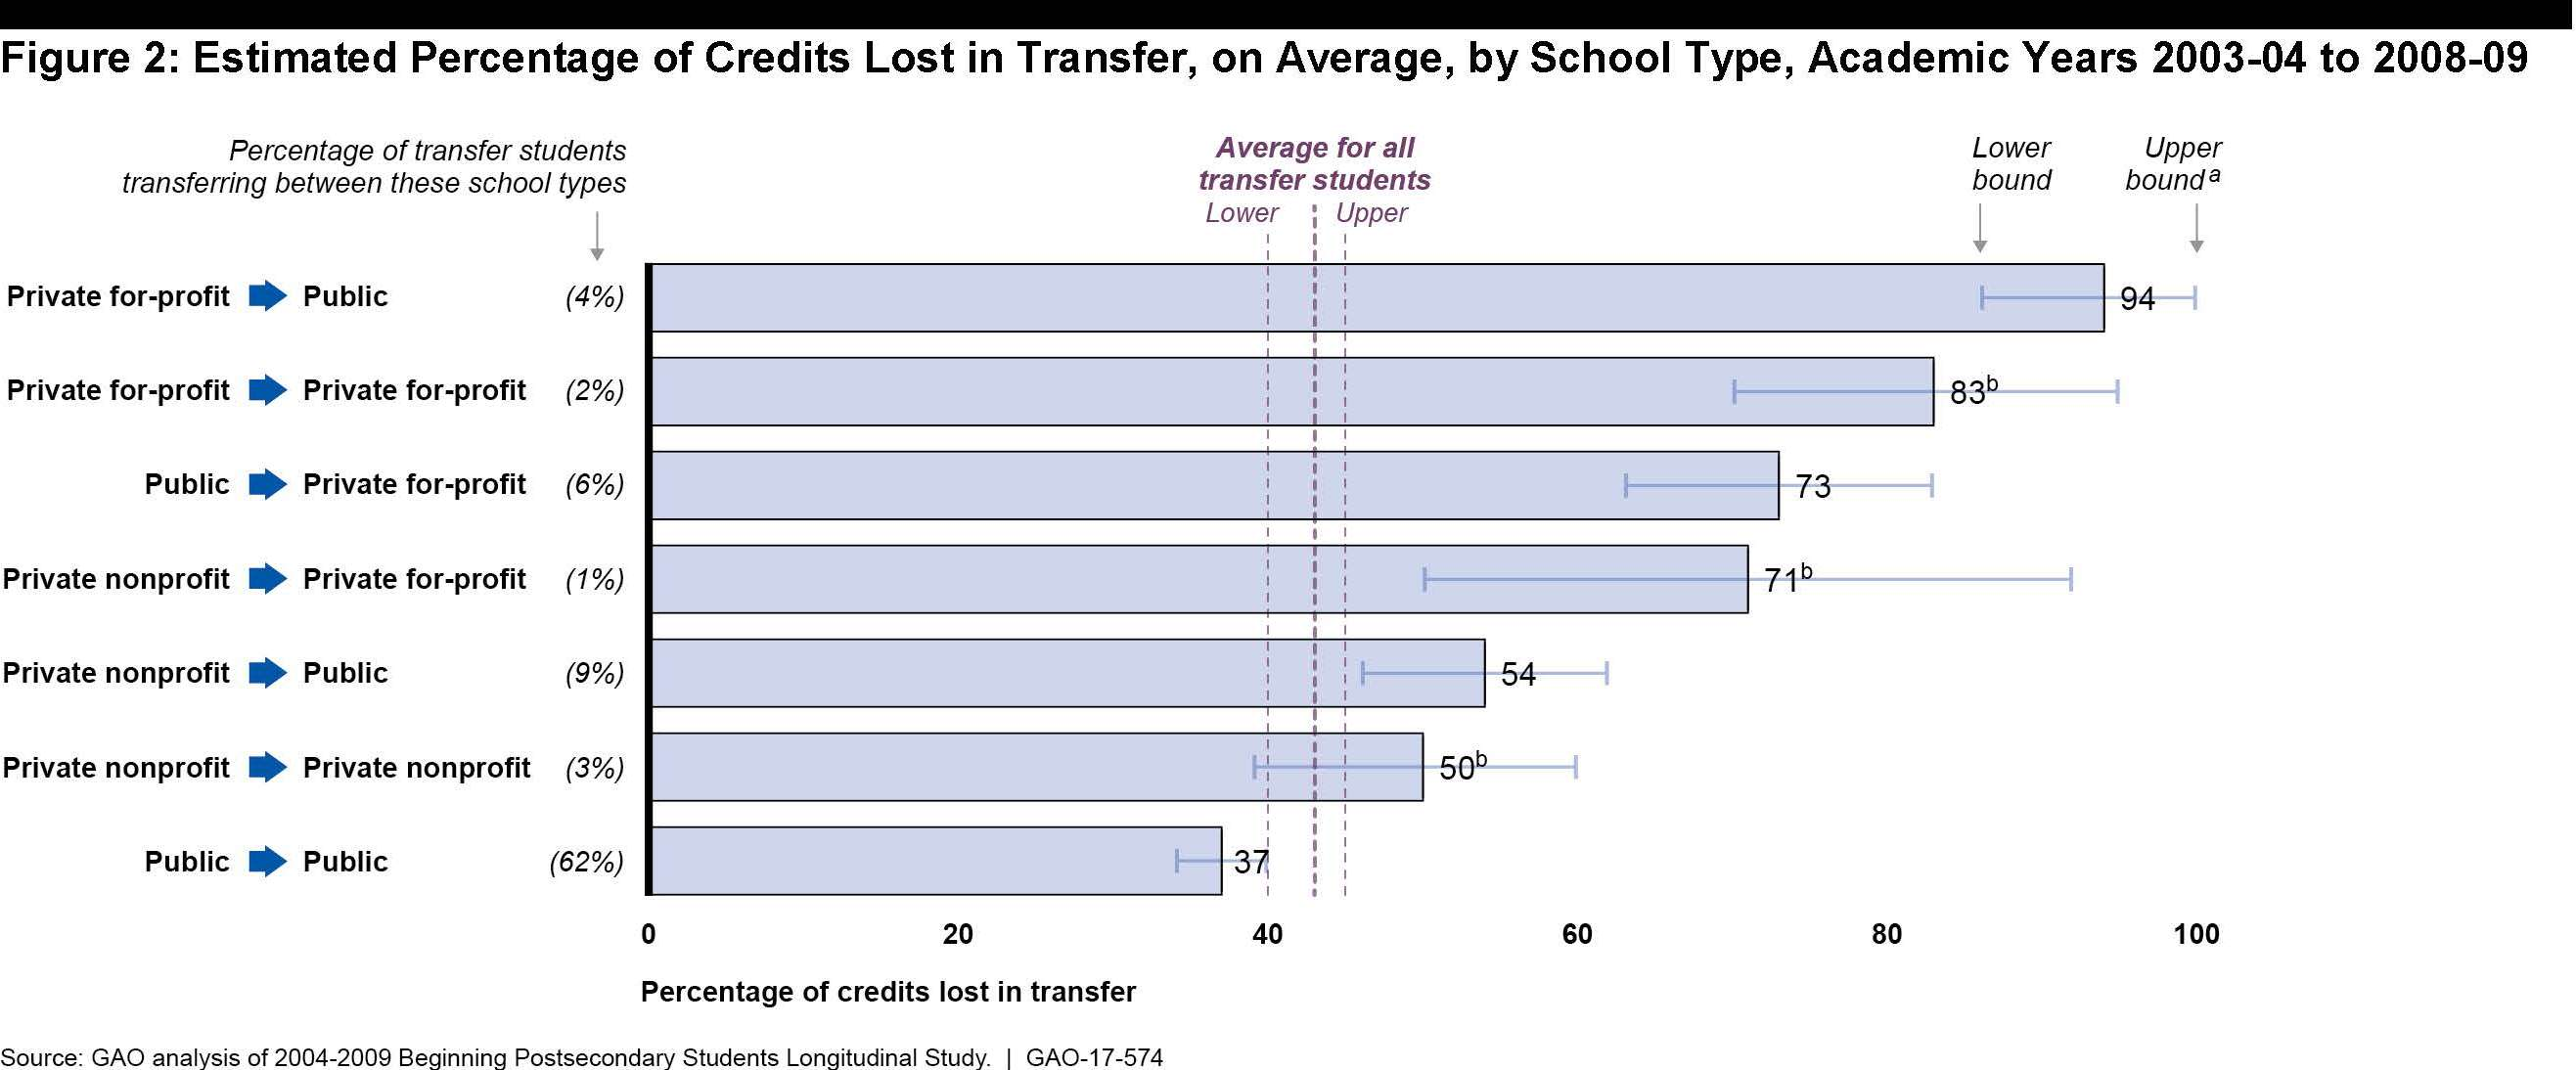 Figure 2: Estimated Percentage of Credits Lost in Transfer, on Average, by School Type, Academic Years 2003-04. Bar chart shows percentages of students transferring by type of institution, and percentage of credits lost in transfer. For students transferring from private for-profit to public (4 percent), 94 percent of credits are lost. For students transferring from private for-profit to private for-profit (2 percent), 83 percent of credits are lost. For students transferring from public to private for-profit (6 percent), 73 percent of credits are lost. For students transferring from private nonprofit to private for-profit (1 percent), 71 percent of credits are lost. For students transferring from private nonprofit to public (9 percent), 54 percent of credits are lost. For students transferring from private nonprofit to private nonprofit (3 percent), 50 percent of credits are lost. For students transferring from public to public (62 percent), 37 percent of credits are lost. Source: GAO analysis of 2003-2009 Beginning Postsecondary Students Longitudinal Study.